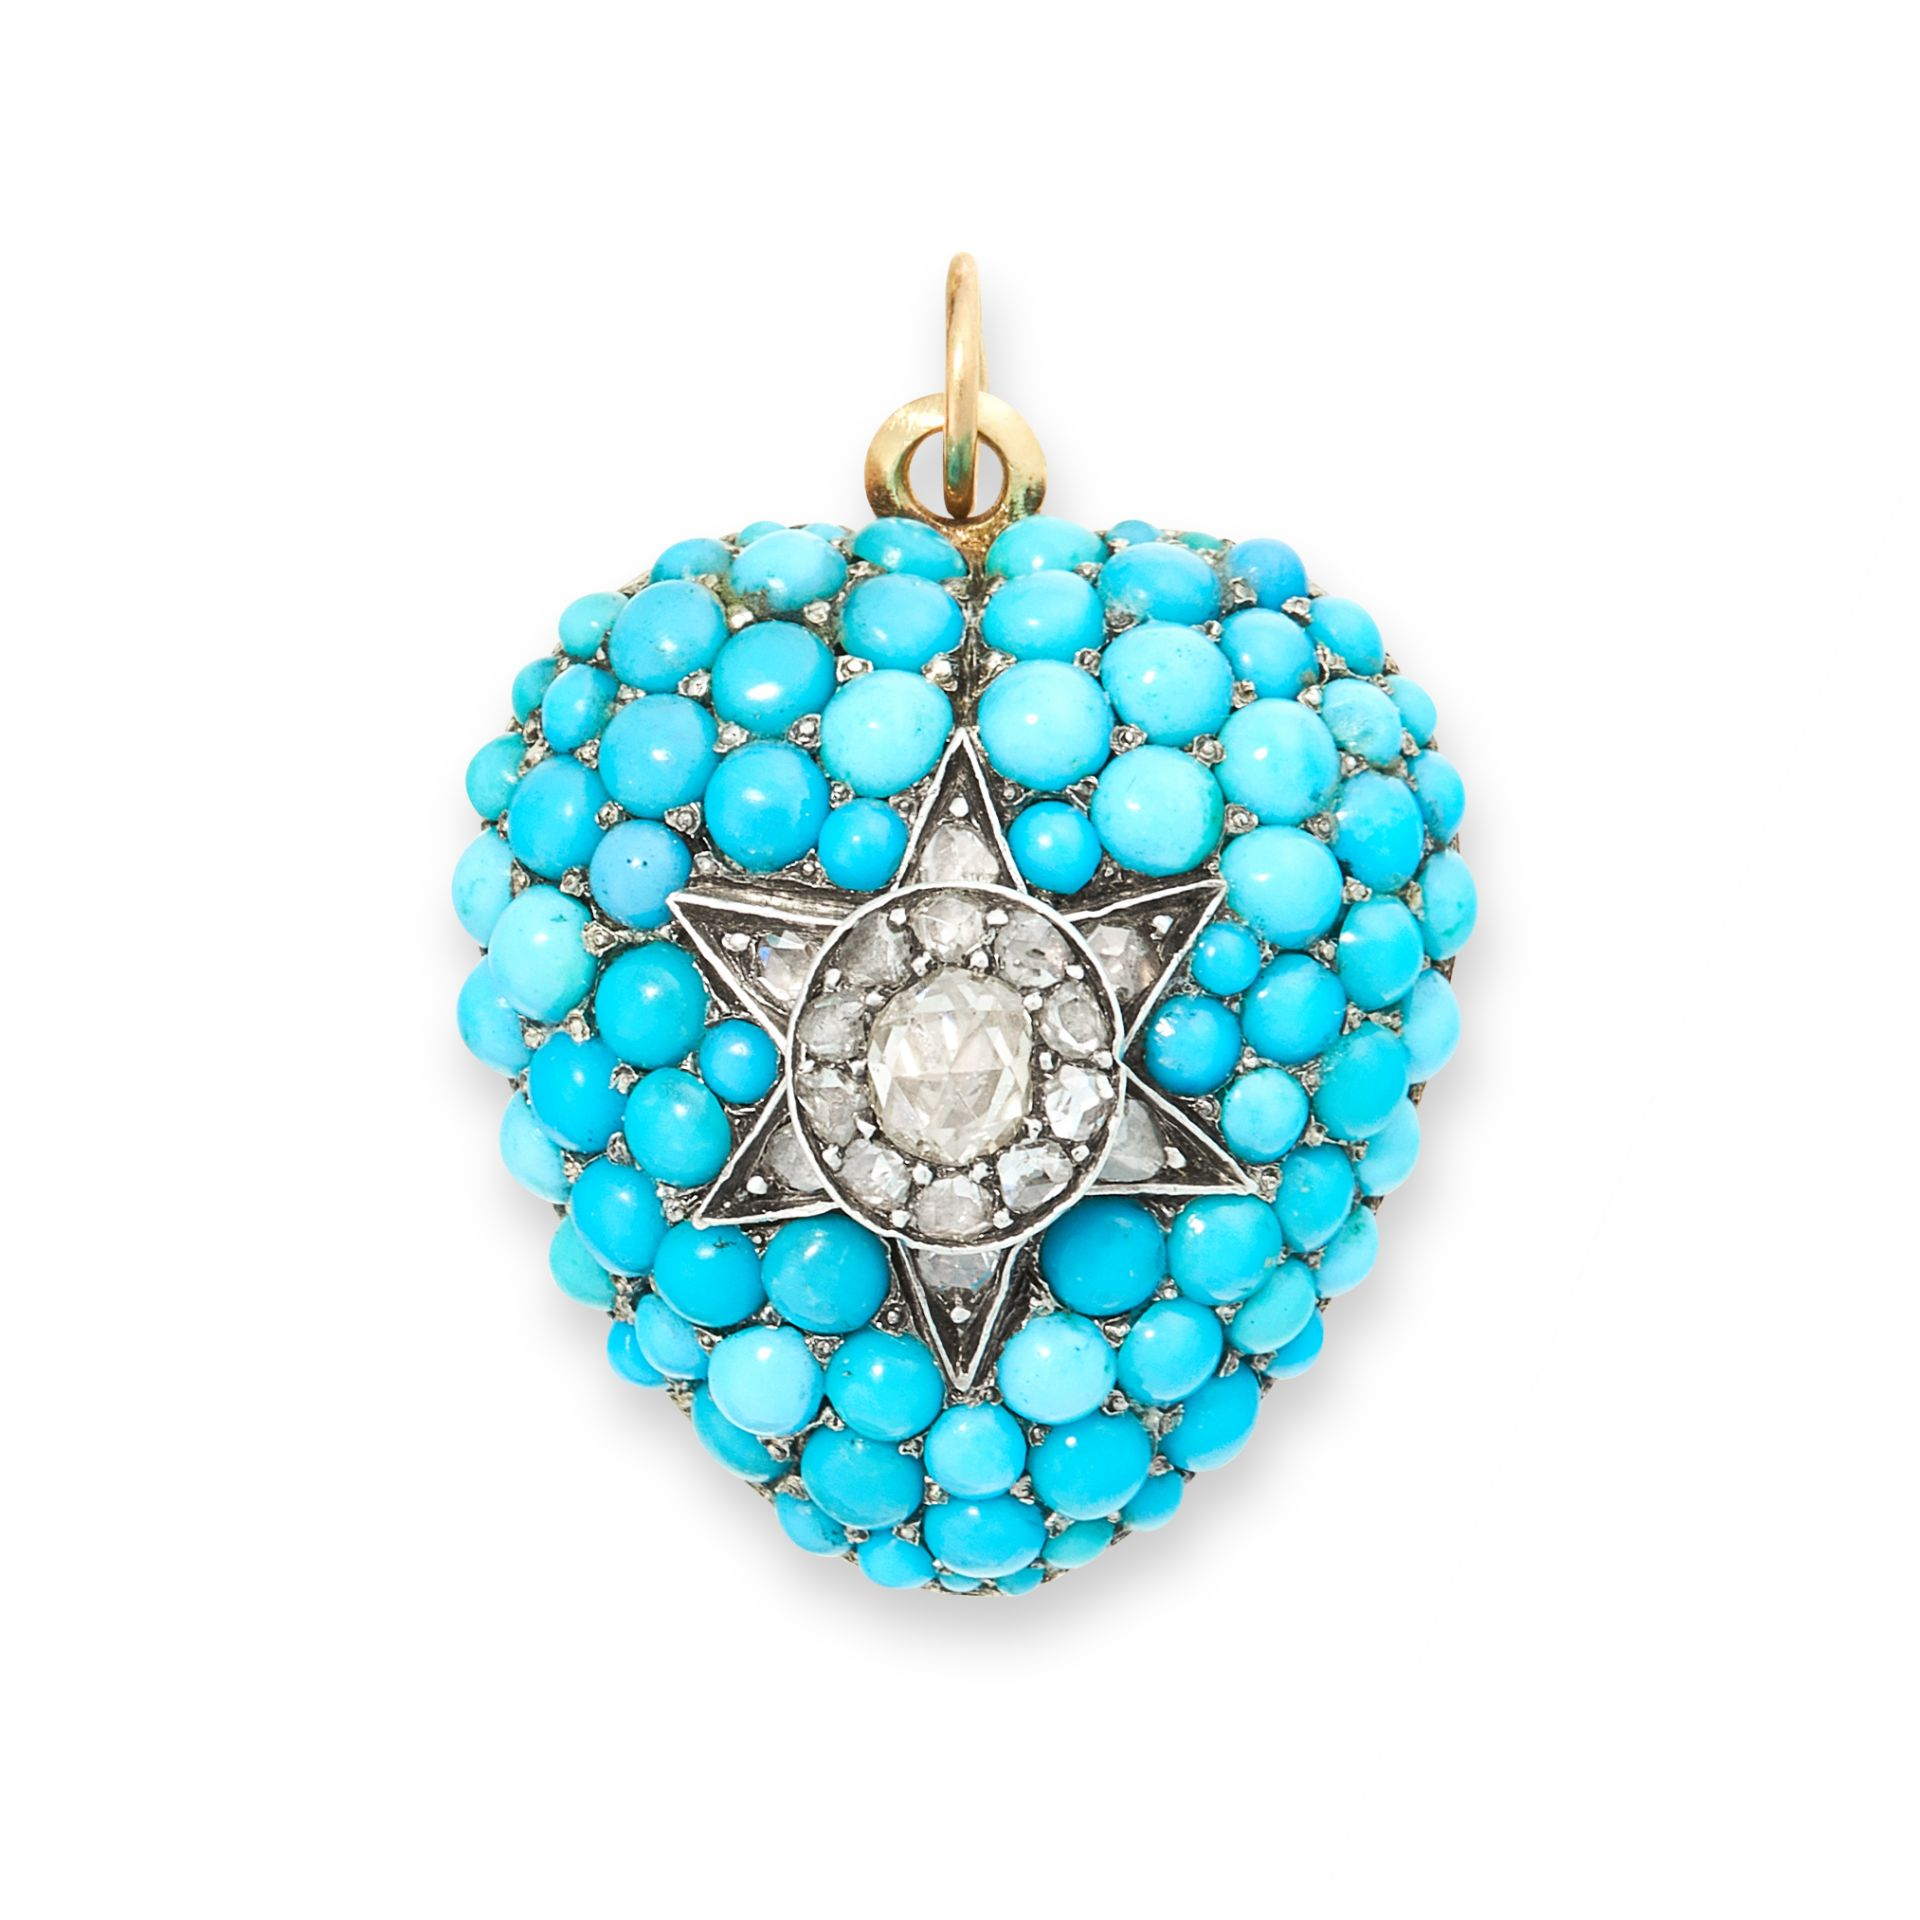 AN ANTIQUE TURQUOISE AND DIAMOND MOURNING LOCKET PENDANT, 19TH CENTURY in yellow gold gold silver,